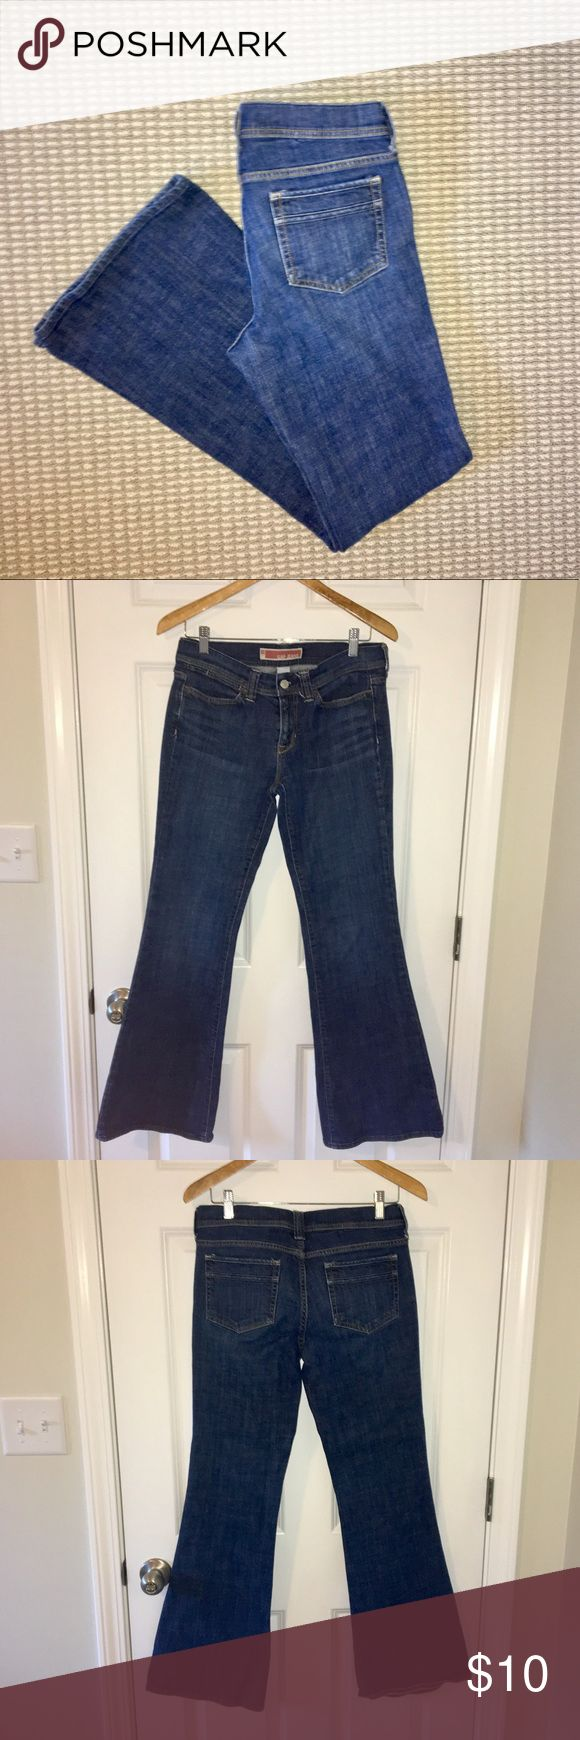 """GAP jeans GAP jeans. 31.5"""" inseam. 8"""" rise. Approx 33.5"""" waist. They have a small defect on right leg below knee, noted in picture. GAP Jeans"""